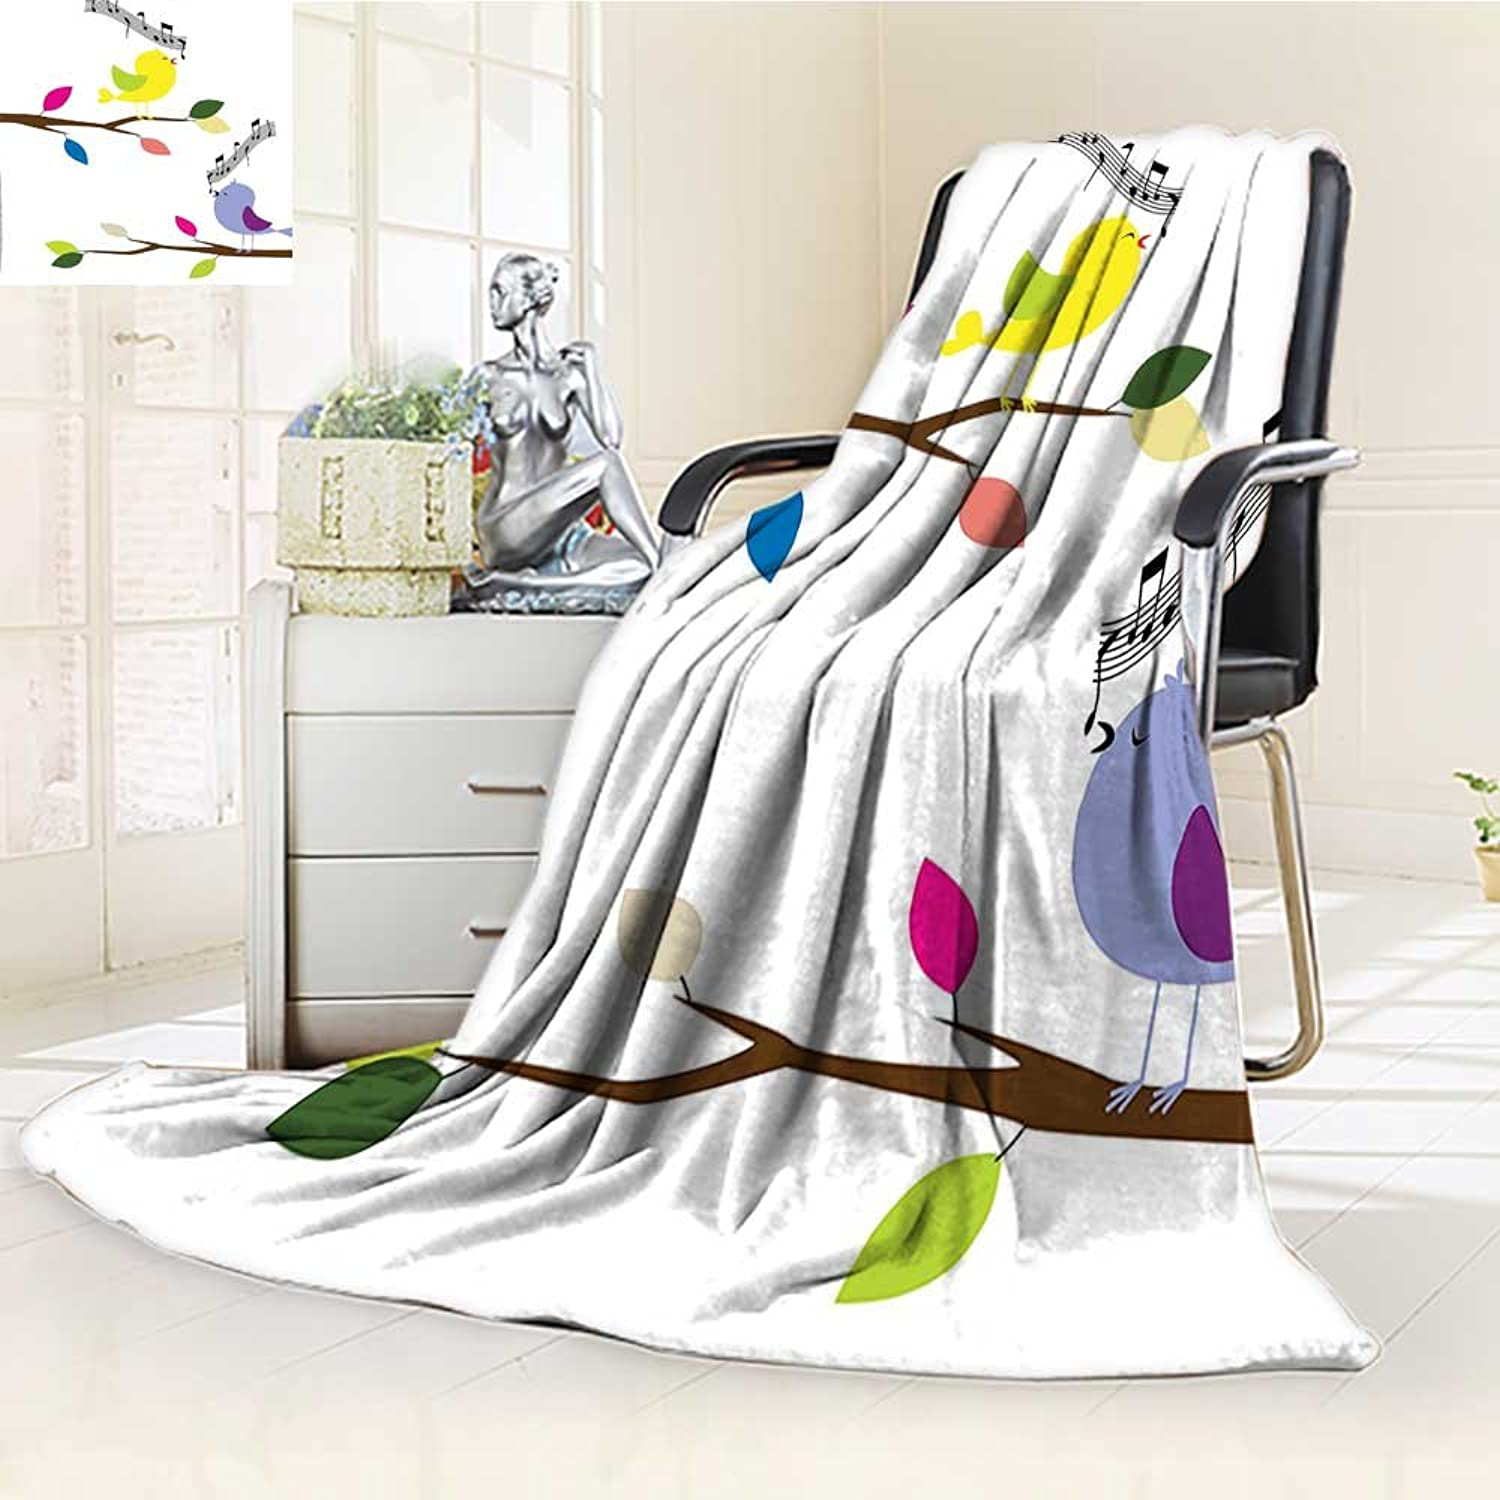 YOYI-HOME Fleece Duplex Printed Blanket 300 GSM Flying Birds of colorful Birds Singing on a Tree Best Happiness Mascots Artsy Humor Multi Reversible Super Soft Warm Fuzzy Bed Blanket  W39.5 x H59